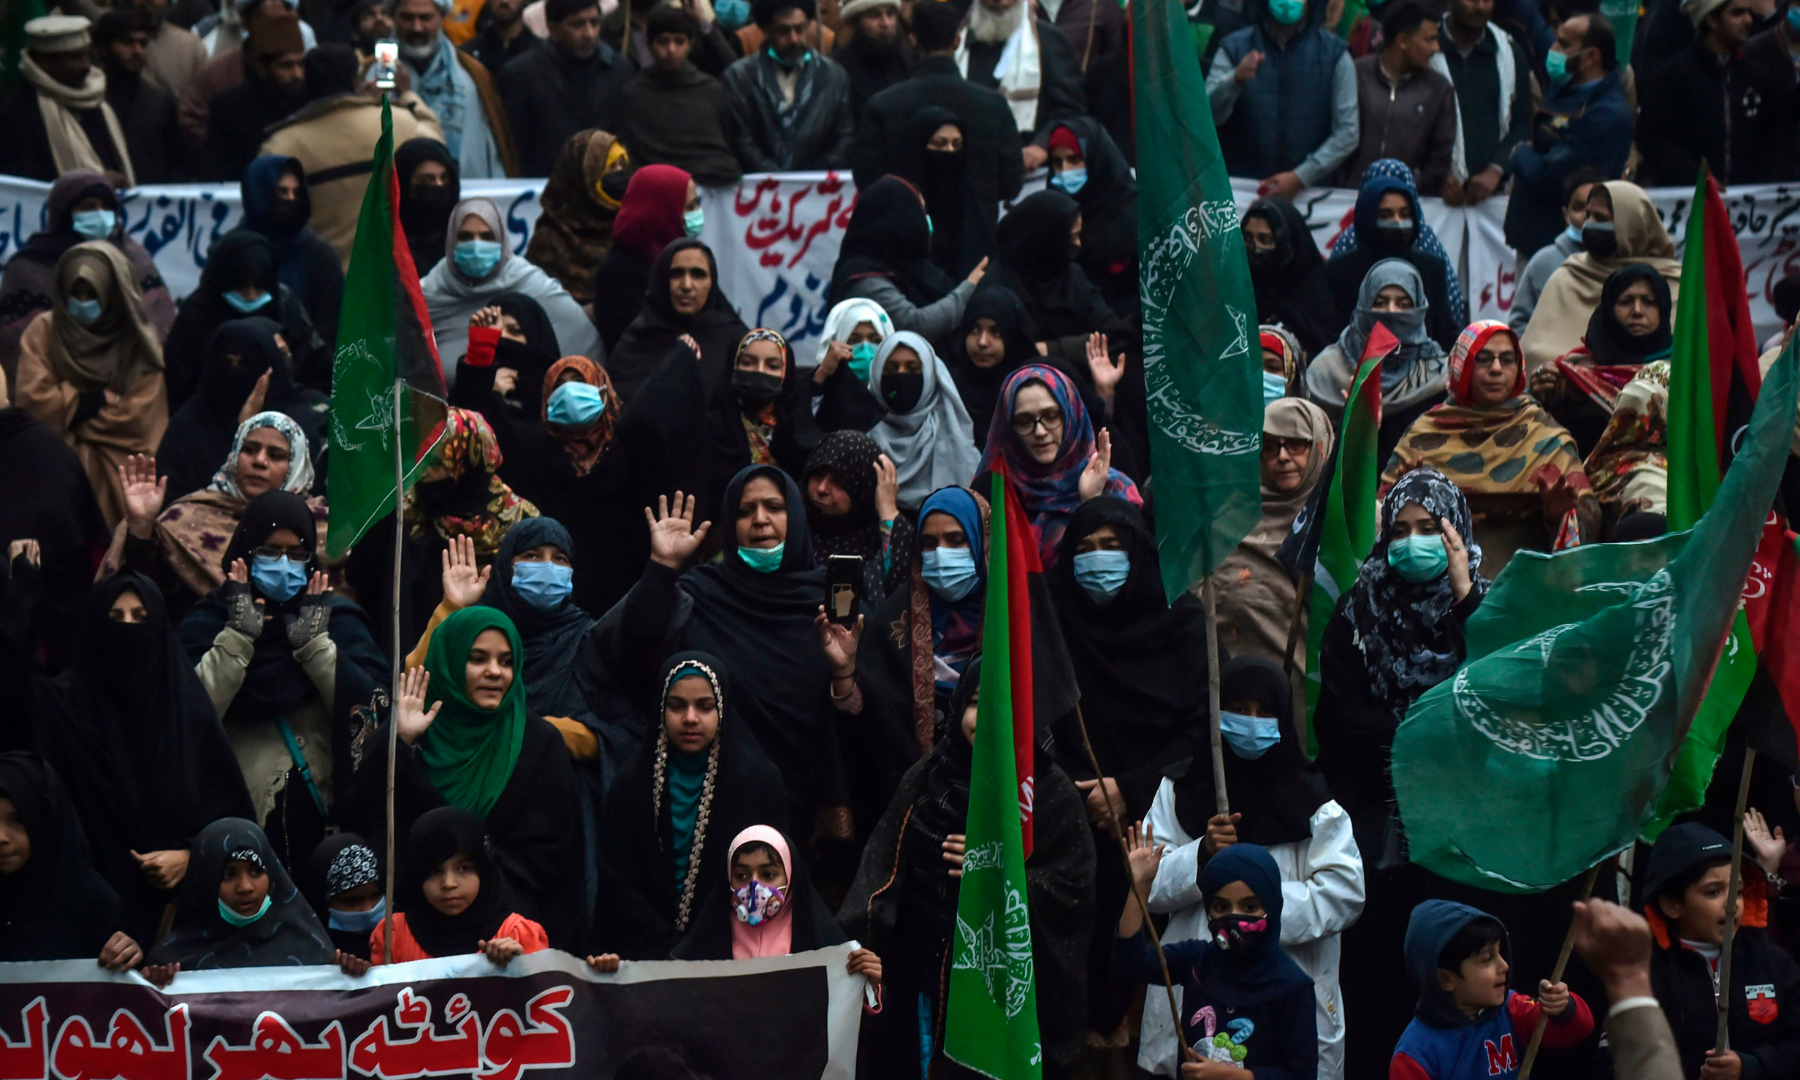 Shia protesters carry placards as they gather during a protest in Lahore on Jan 6. — AFP